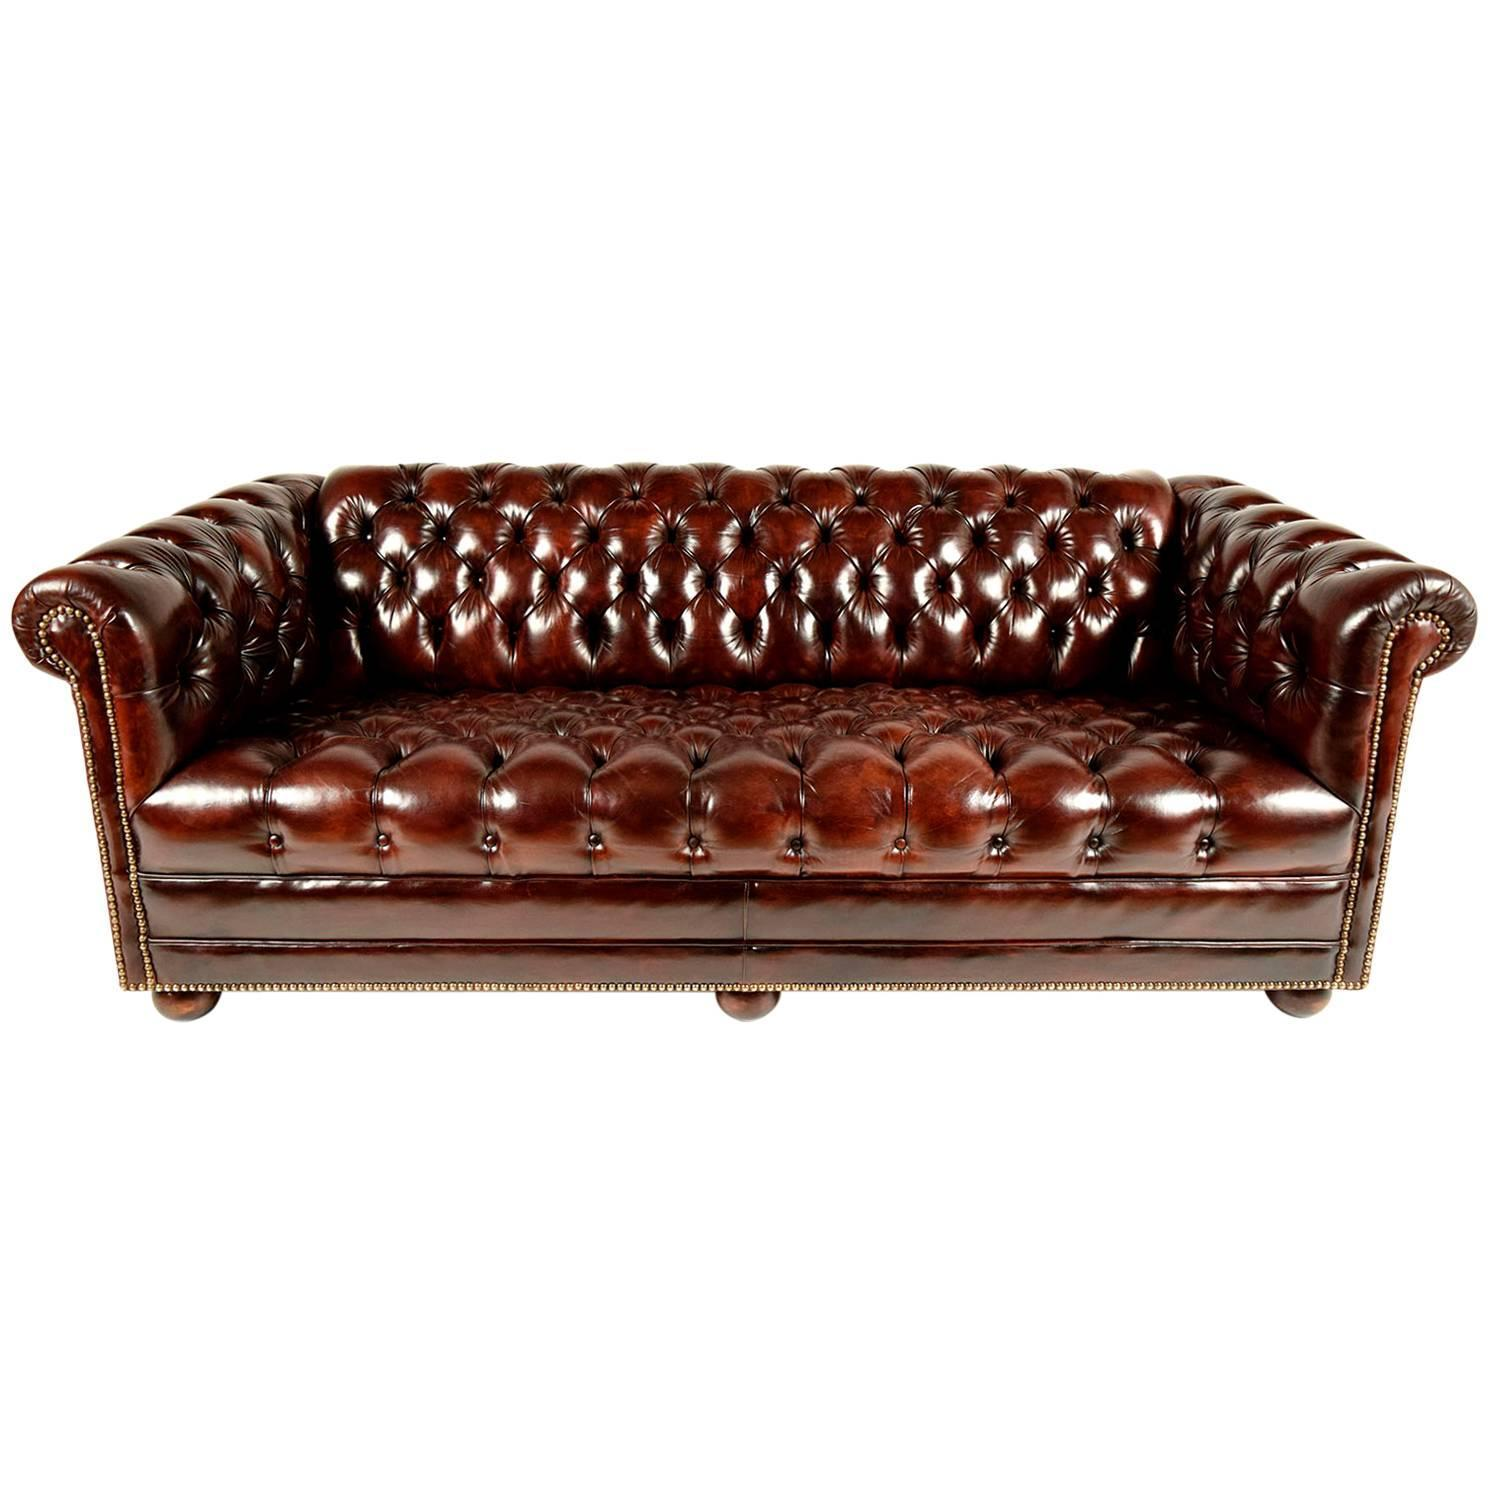 chesterfield tufted leather sofa for sale at 1stdibs. Black Bedroom Furniture Sets. Home Design Ideas